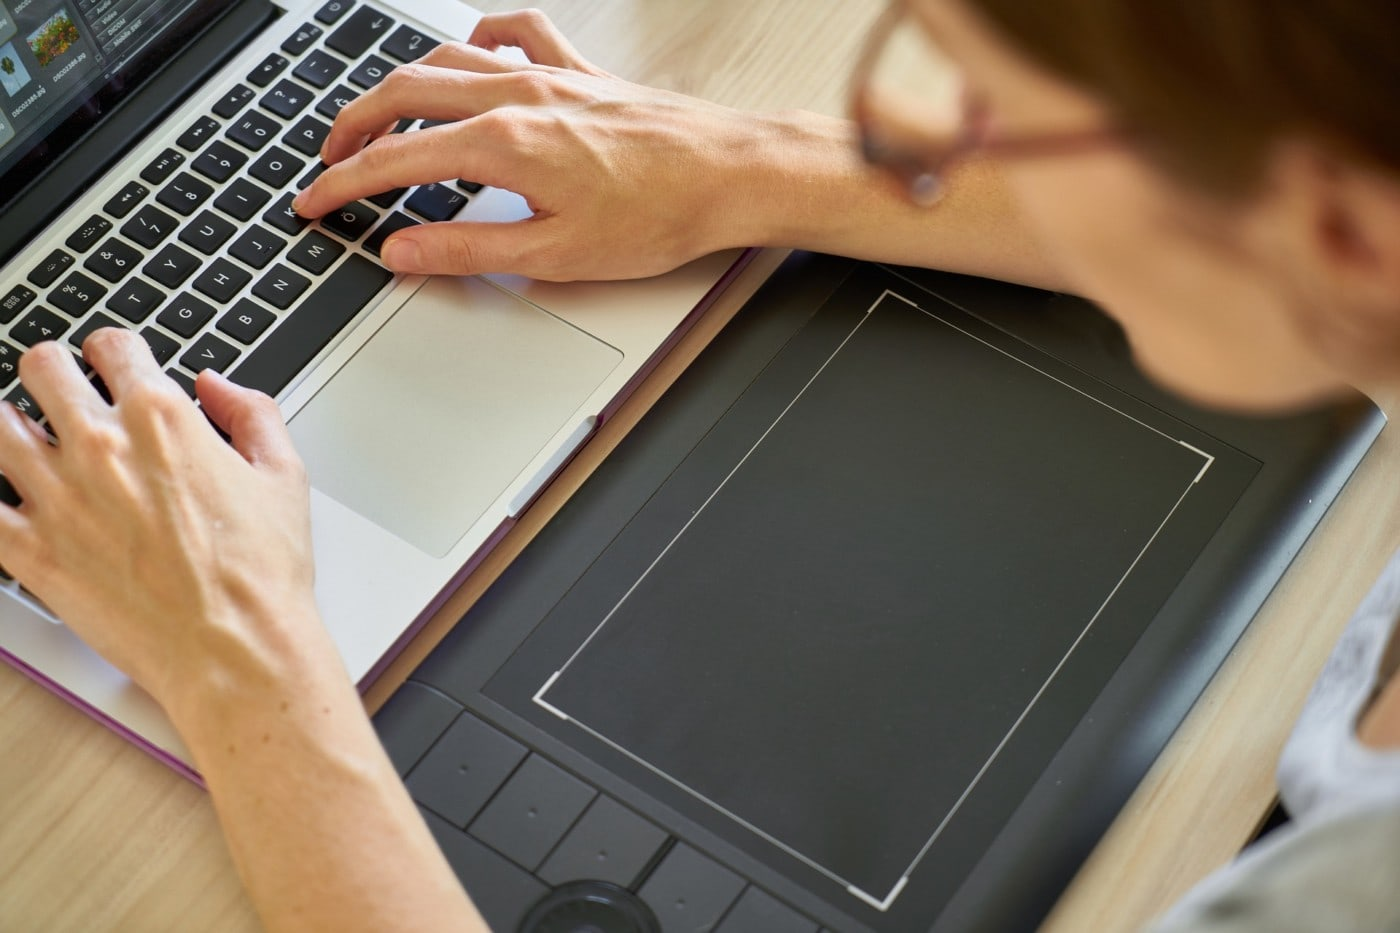 student web designer working on tablet and computer